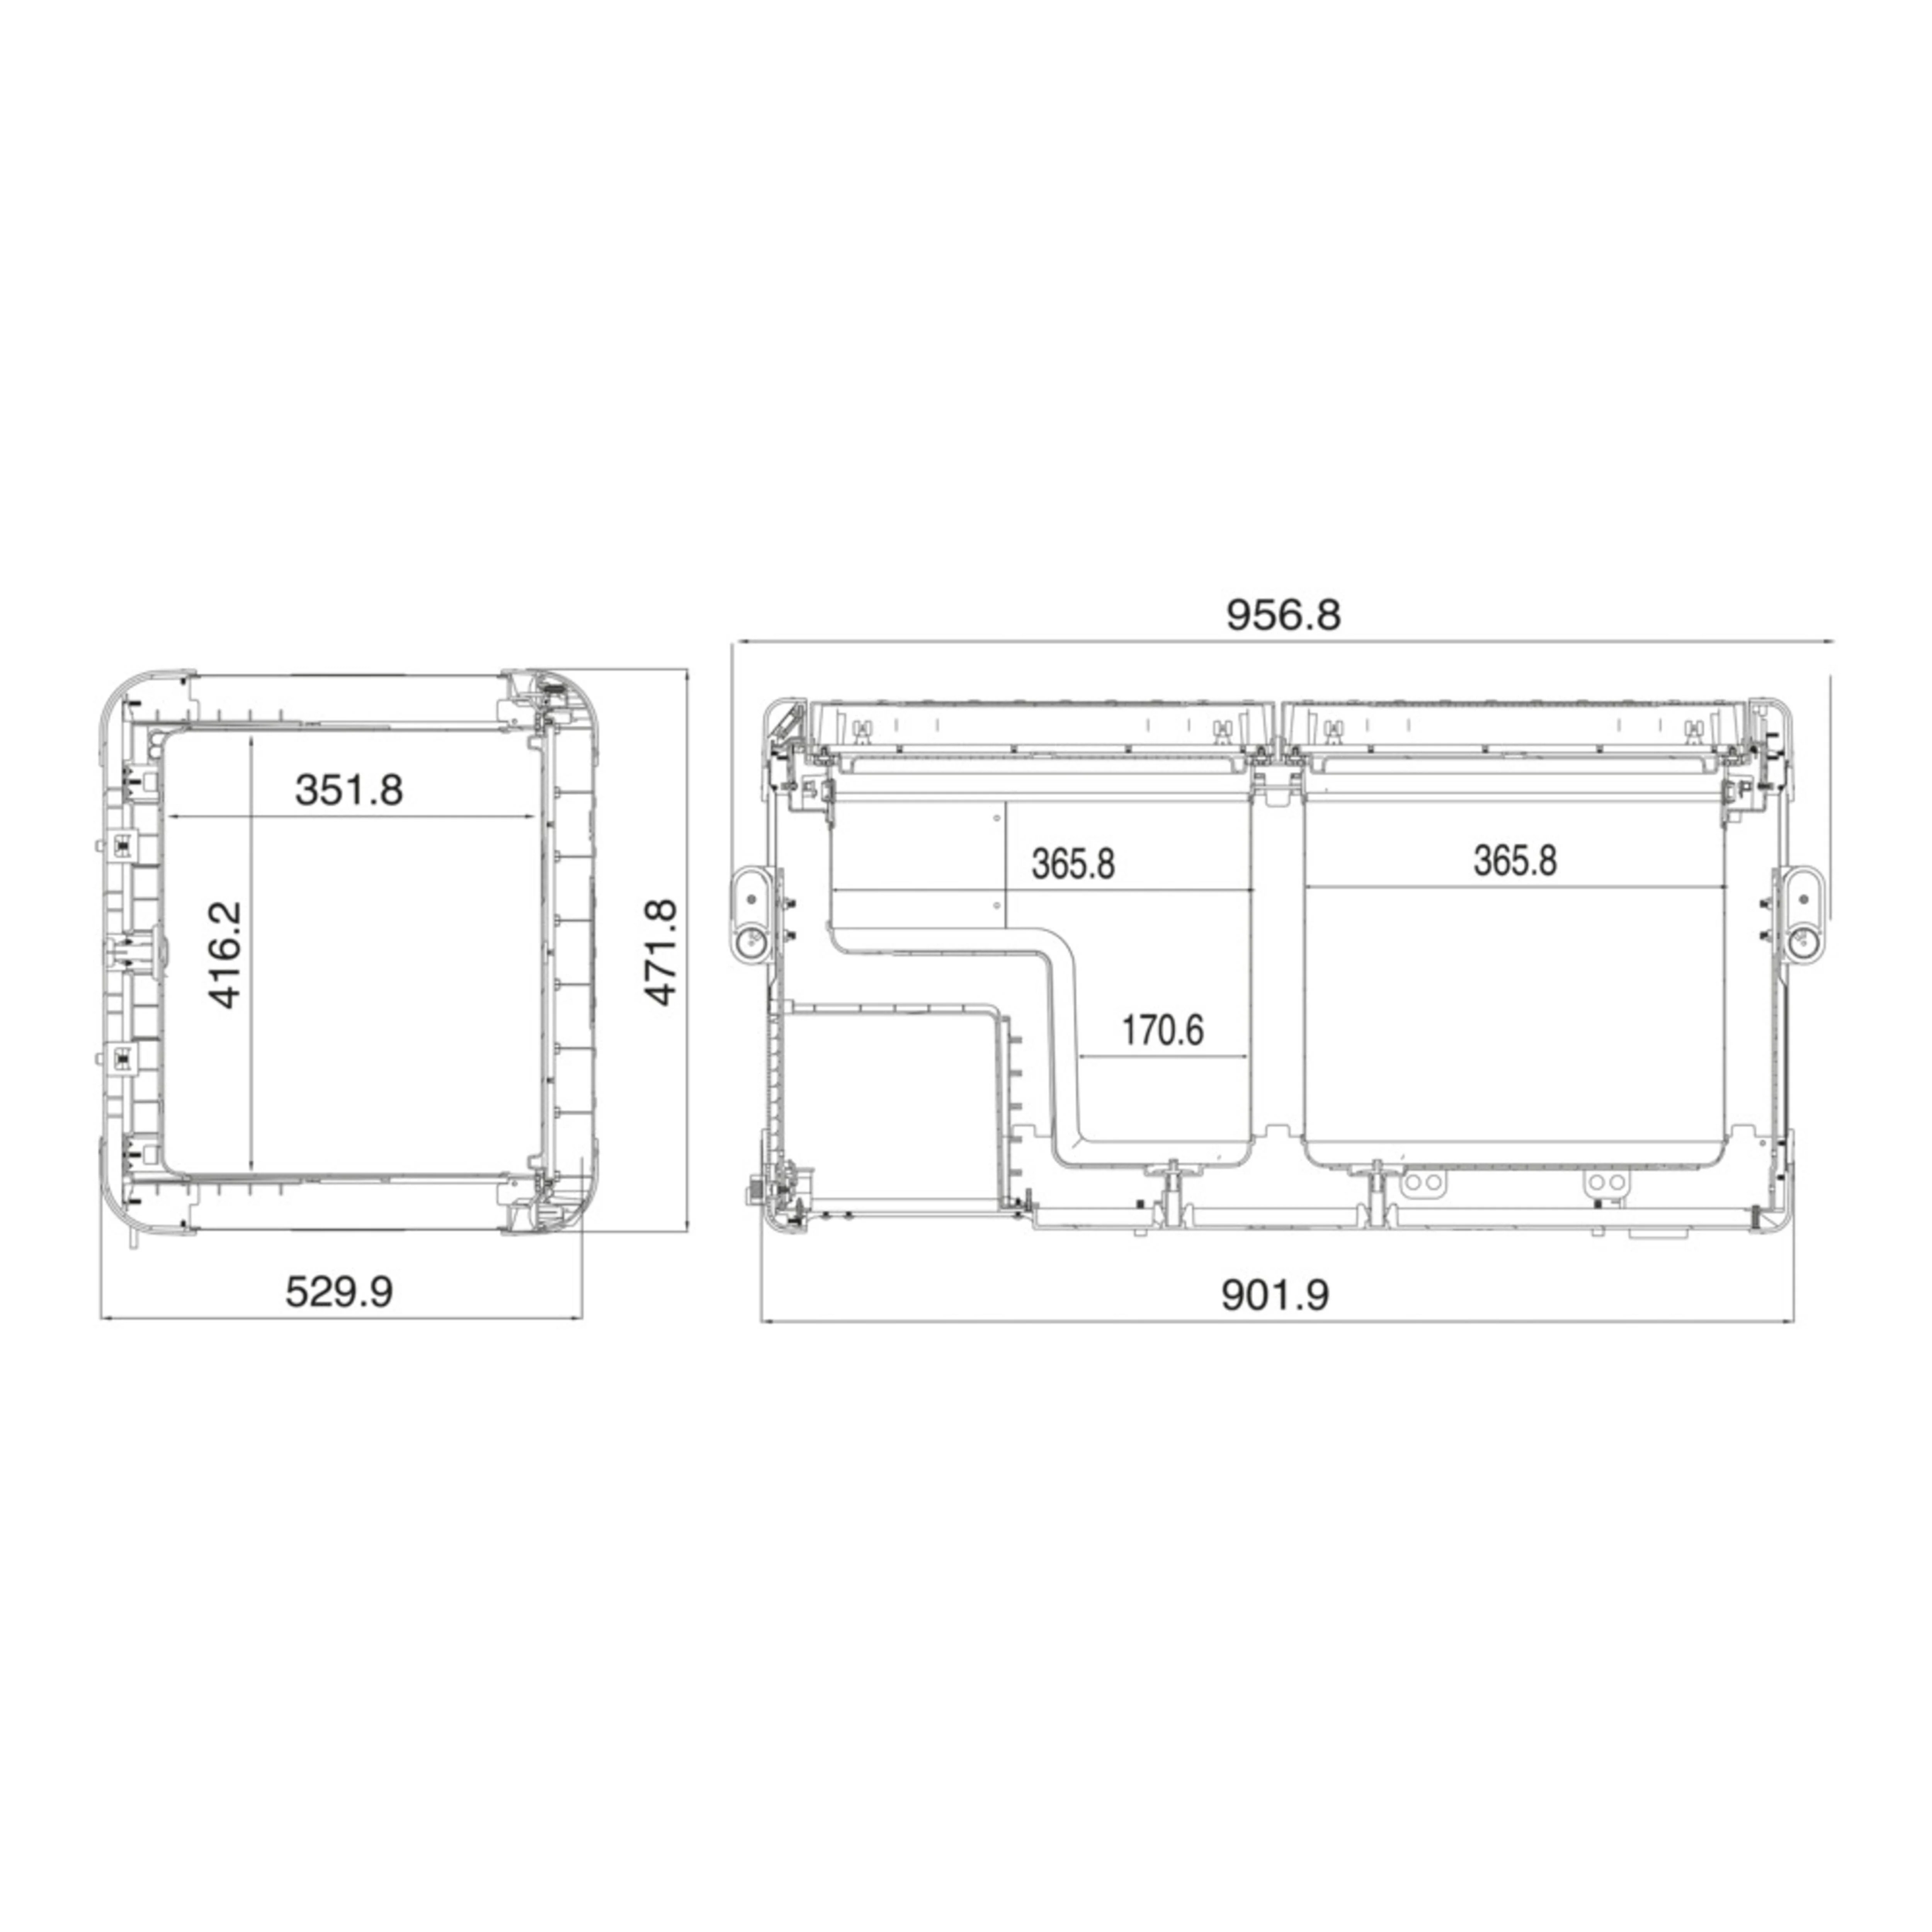 hight resolution of support for dometic waeco cfx 95dzw dometic dometic wire diagrams microwave electrical wiring diagrams dometic waeco source norcold wiring diagram 01340